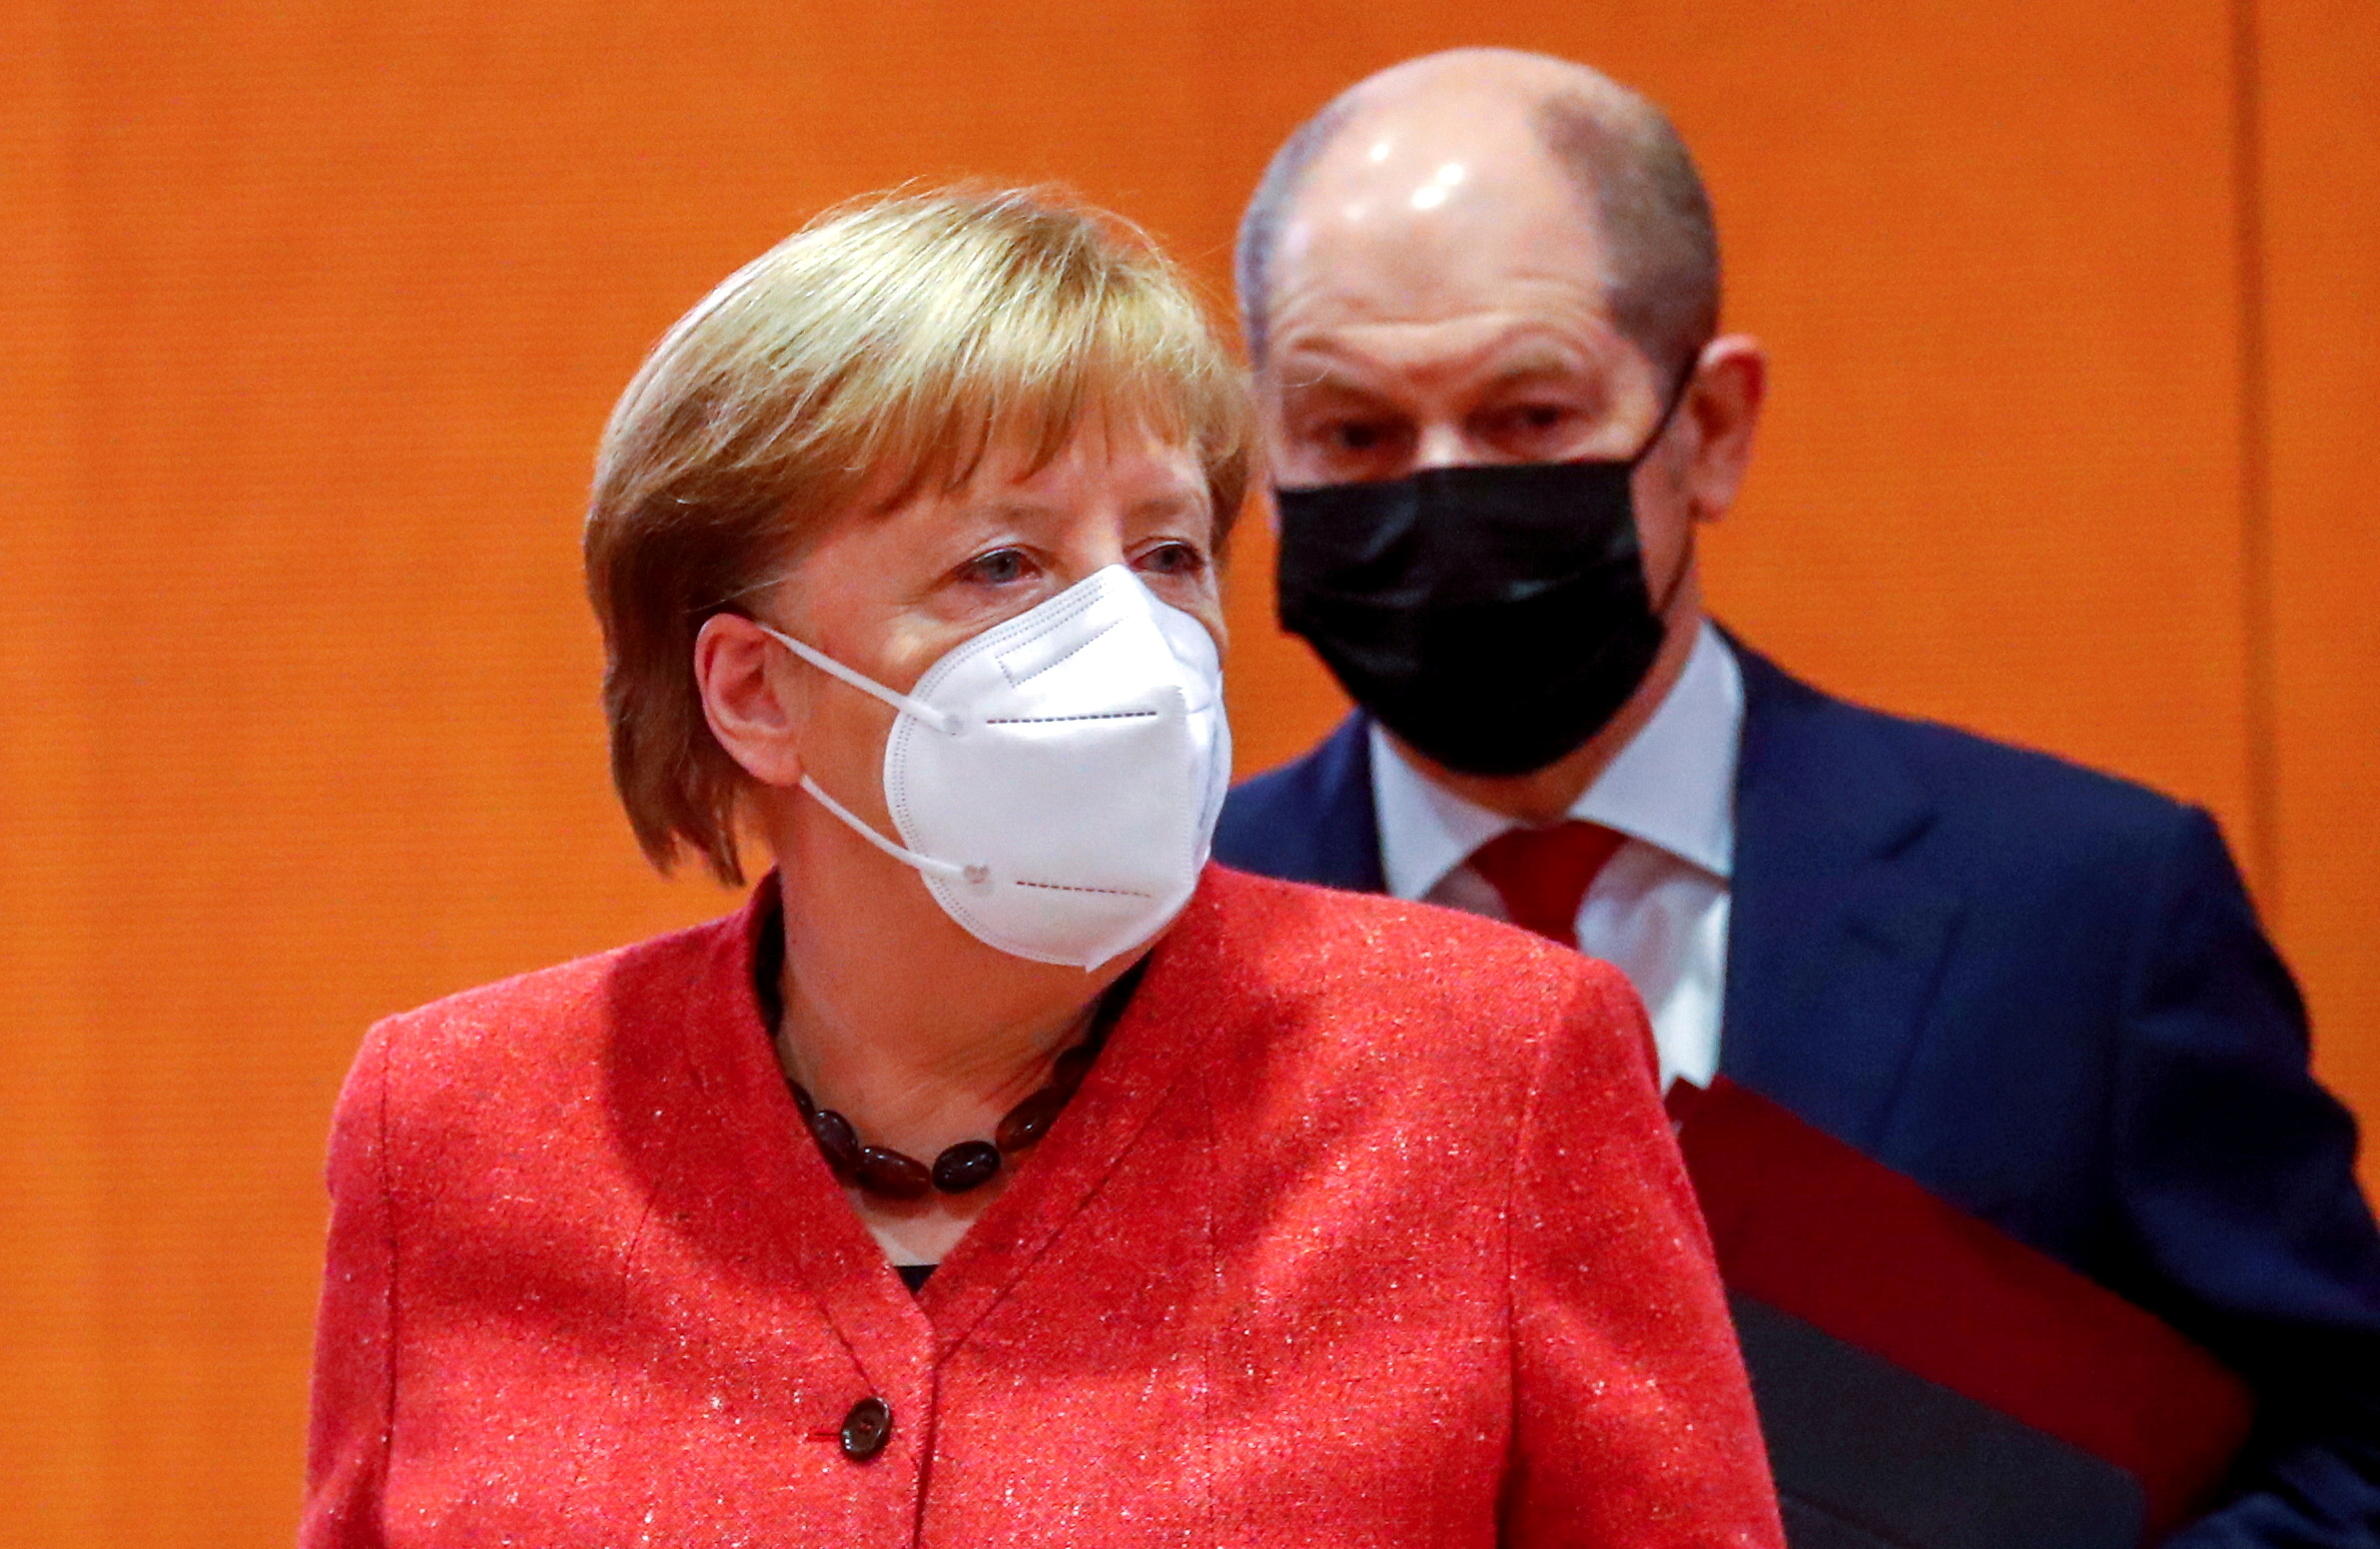 German Chancellor Angela Merkel and Finance Minister Olaf Scholz wear protective masks as they attend the weekly cabinet meeting at the Chancellery in Berlin, Germany, January 20, 2021. REUTERS/Fabrizio Bensch/Pool/File Photo